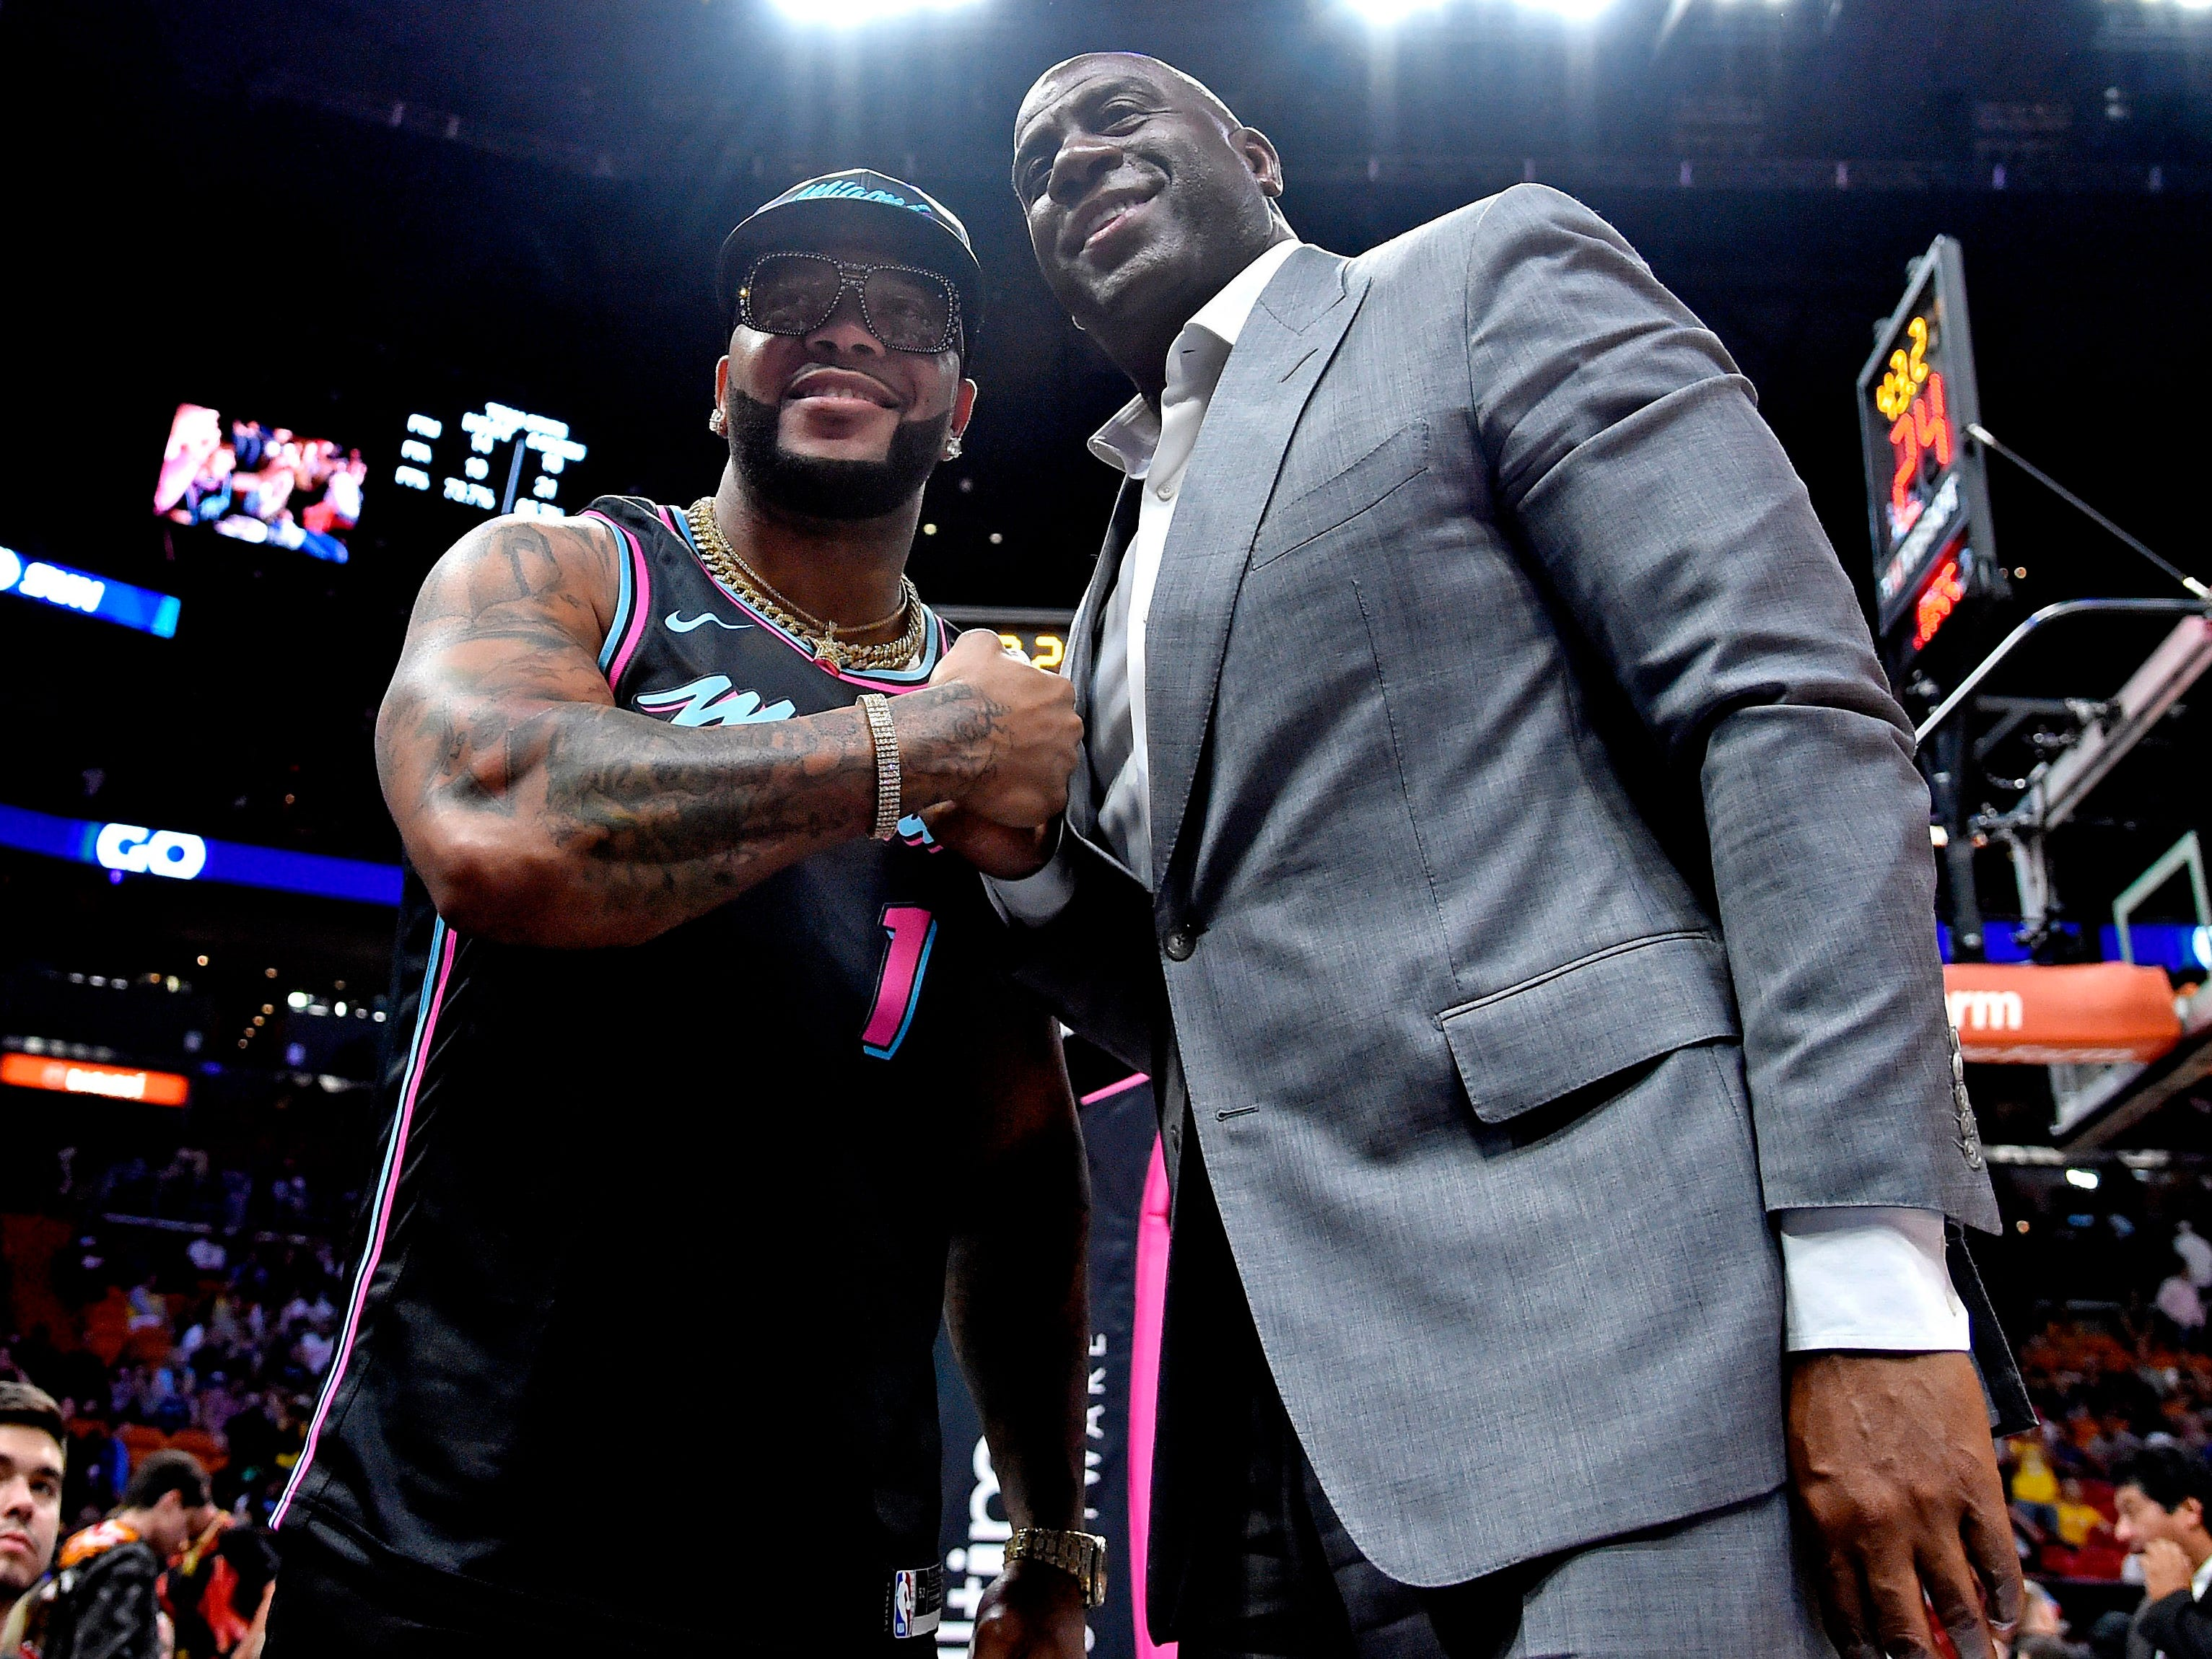 Nov. 18: Lakers executive Magic Johnson, right, and rapper Flo Rida take in the Heat-Lakers game in Miami.